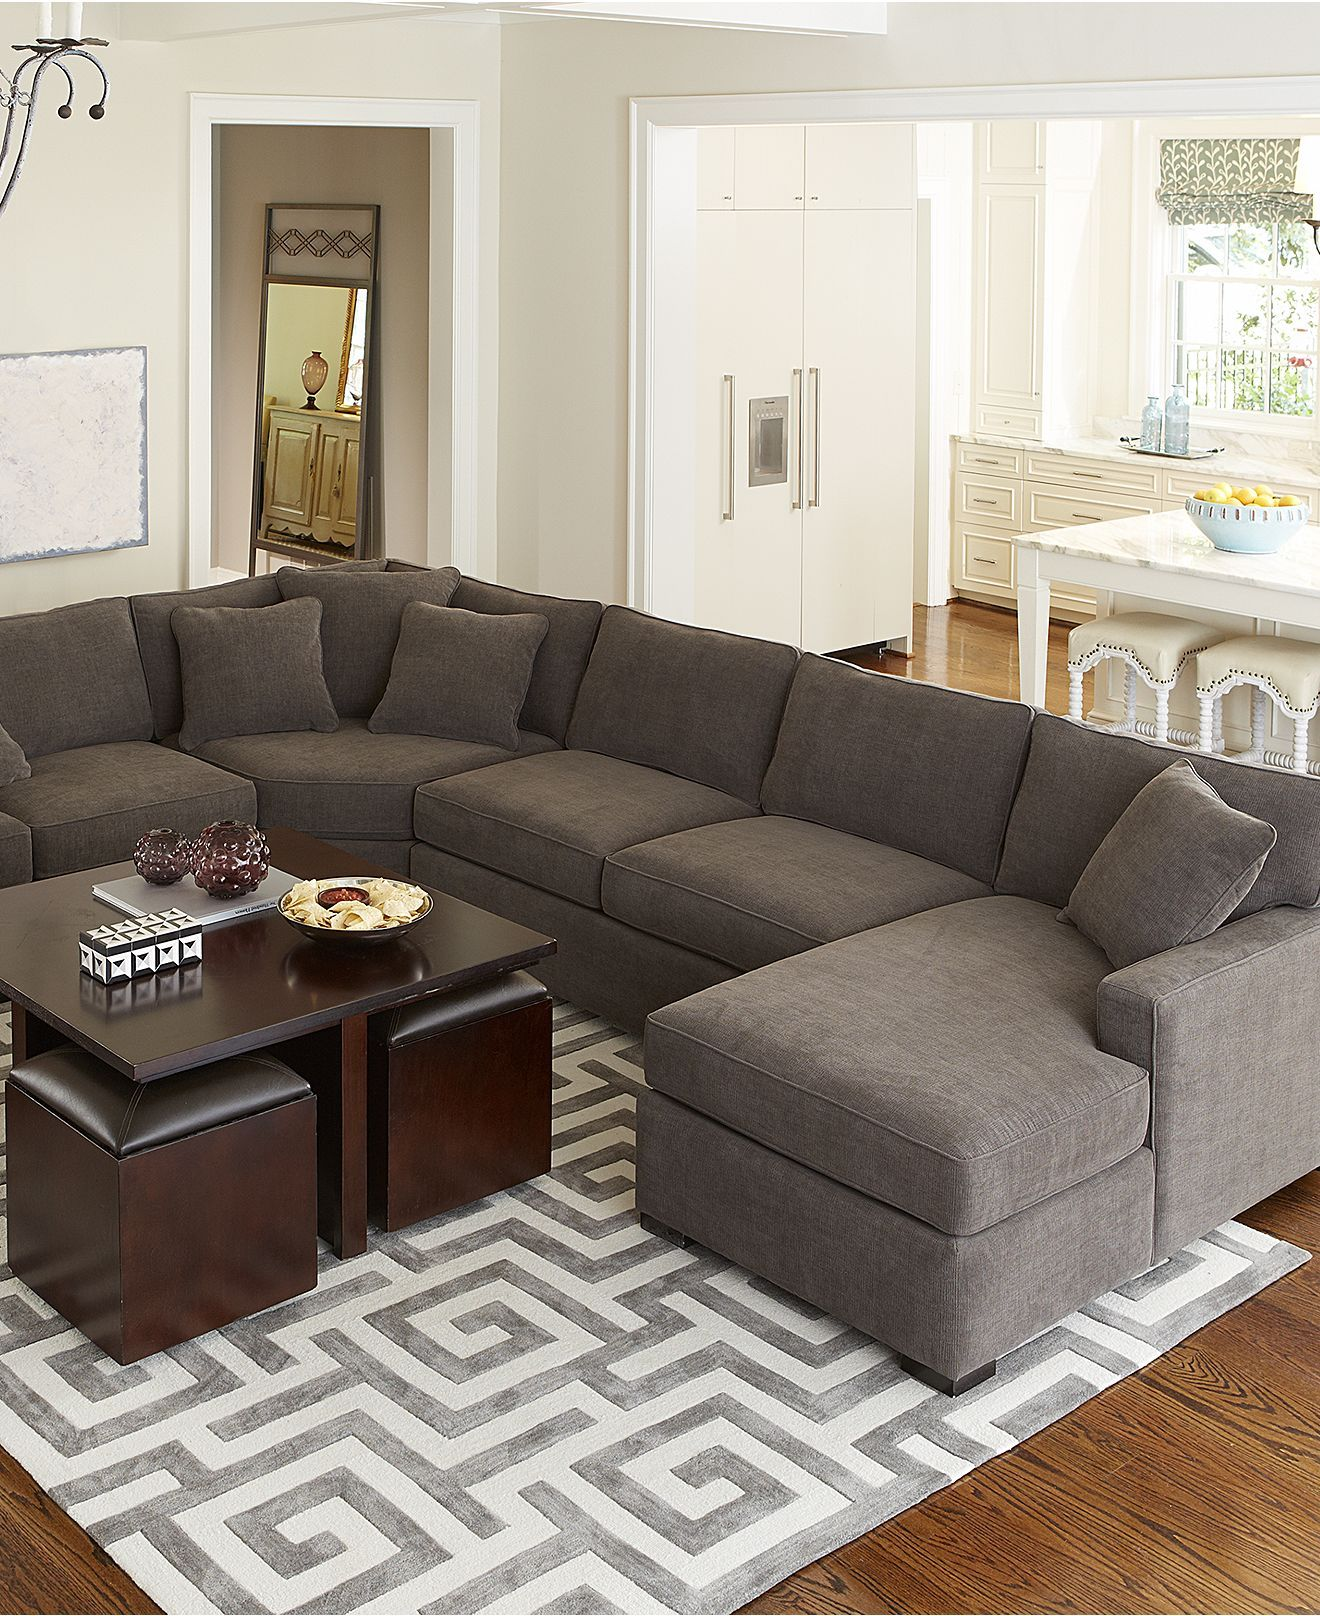 Radley Fabric Sectional Sofa Collection Created For Macys Living RoomsSectional